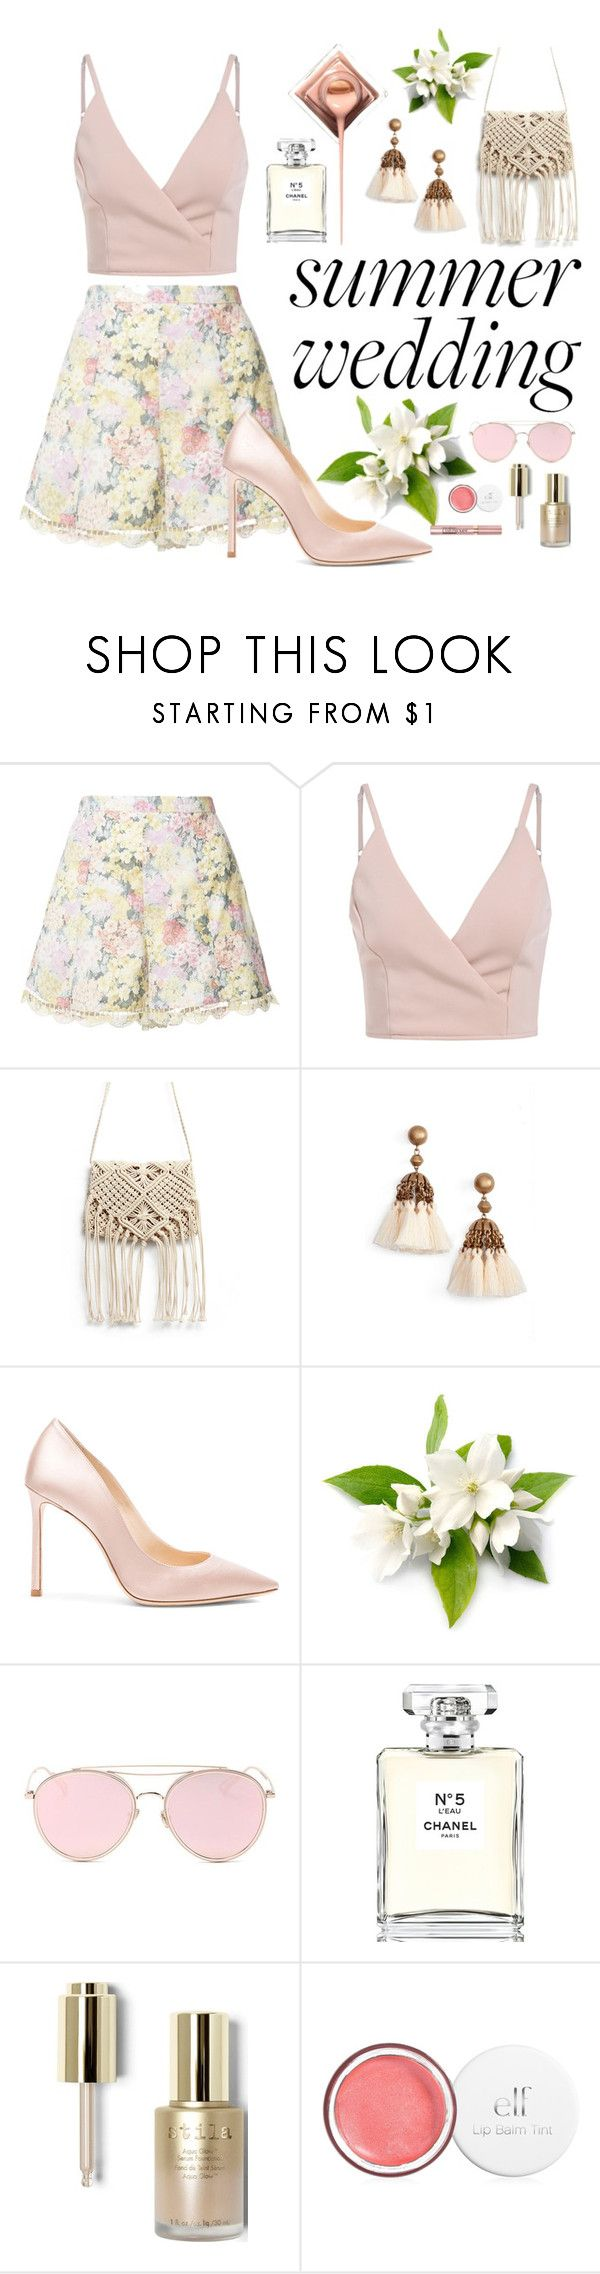 """""""Summer Wedding Guest"""" by kathrynesker ❤ liked on Polyvore featuring Zimmermann, Loren Hope, Jimmy Choo, LMNT, Chanel, Stila and L'Oréal Paris"""